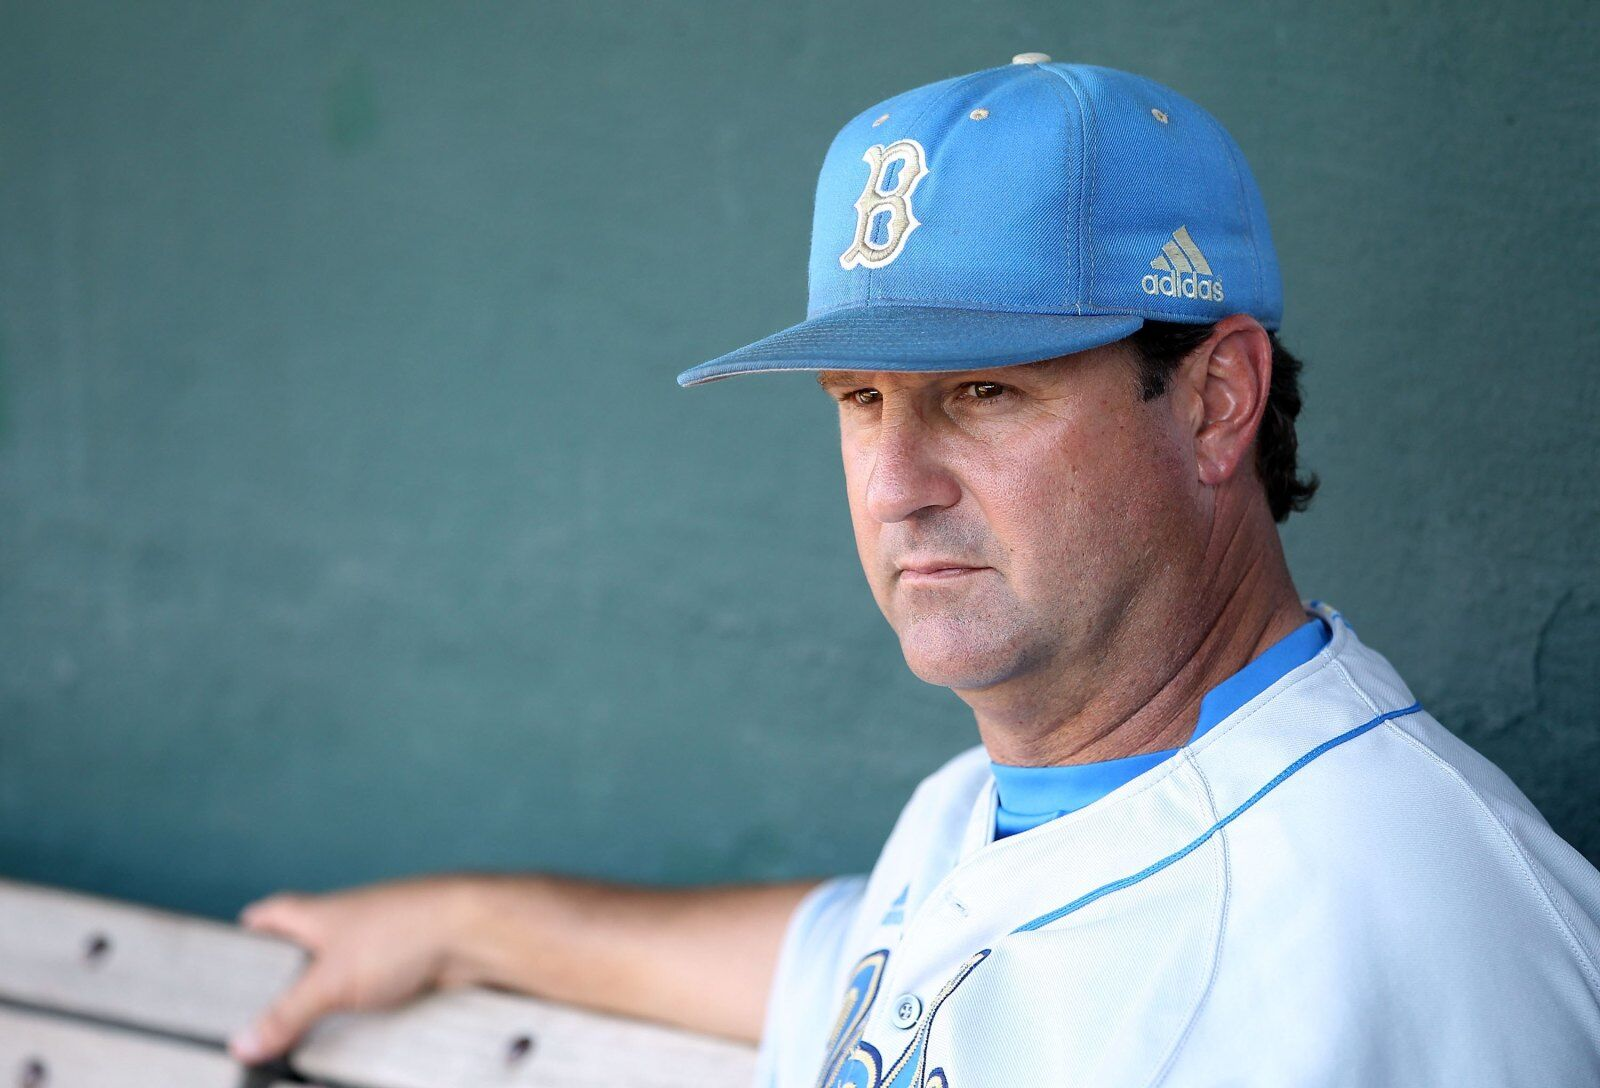 UCLA Baseball: Bruins are the #1 team in the country